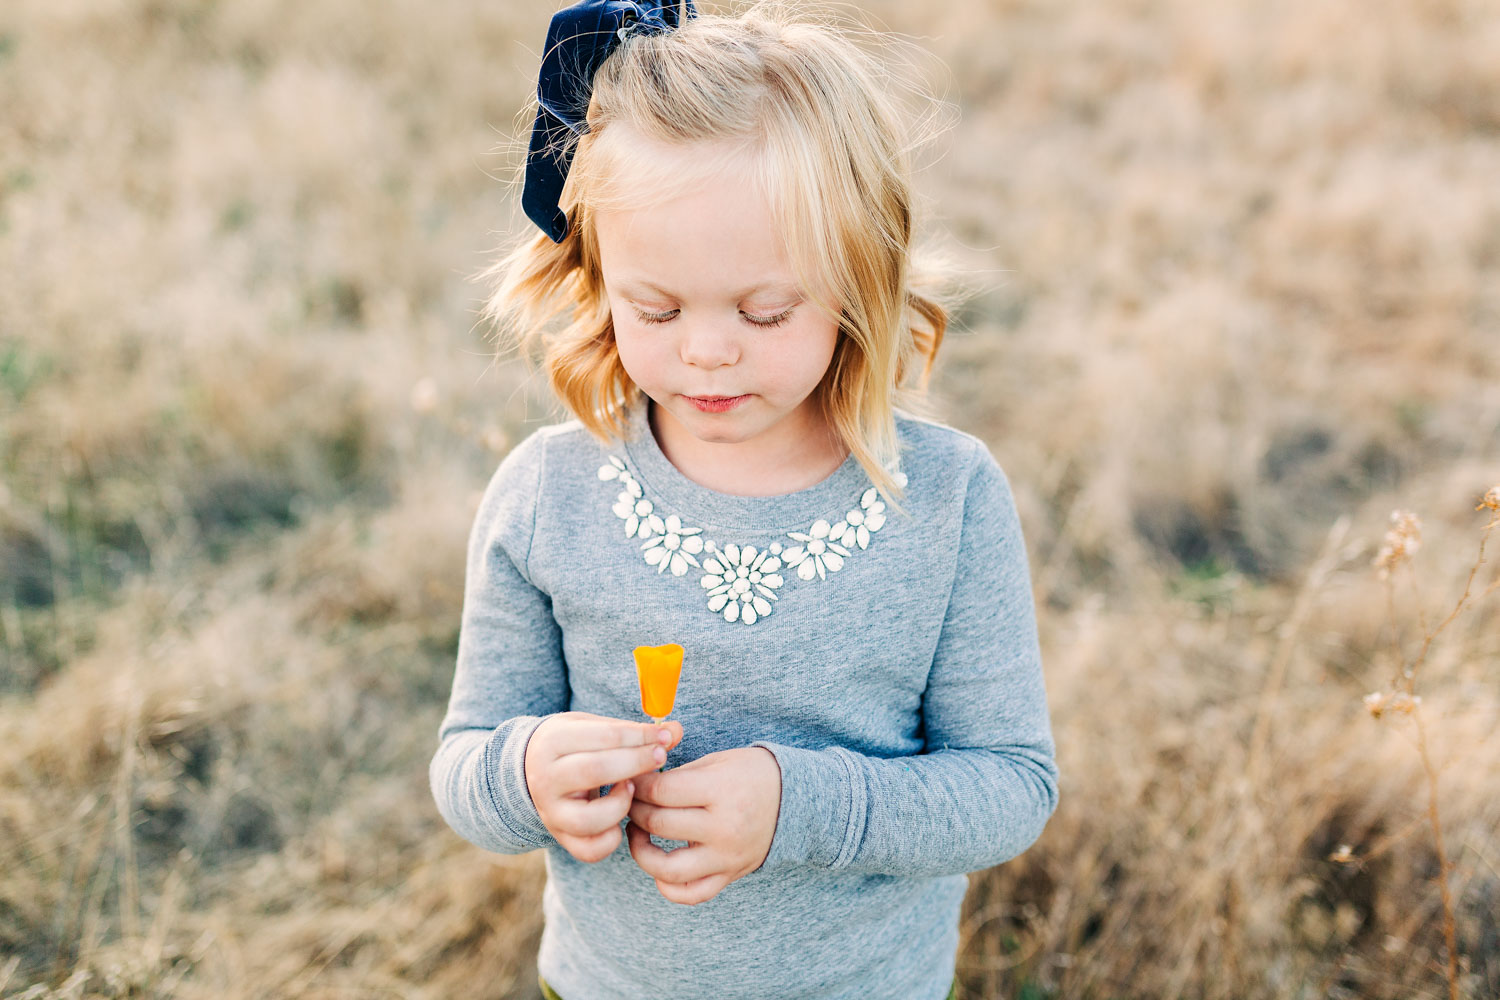 A girl picks a California poppy during a family photo session in Roseville, California with Amy Wright Photography.